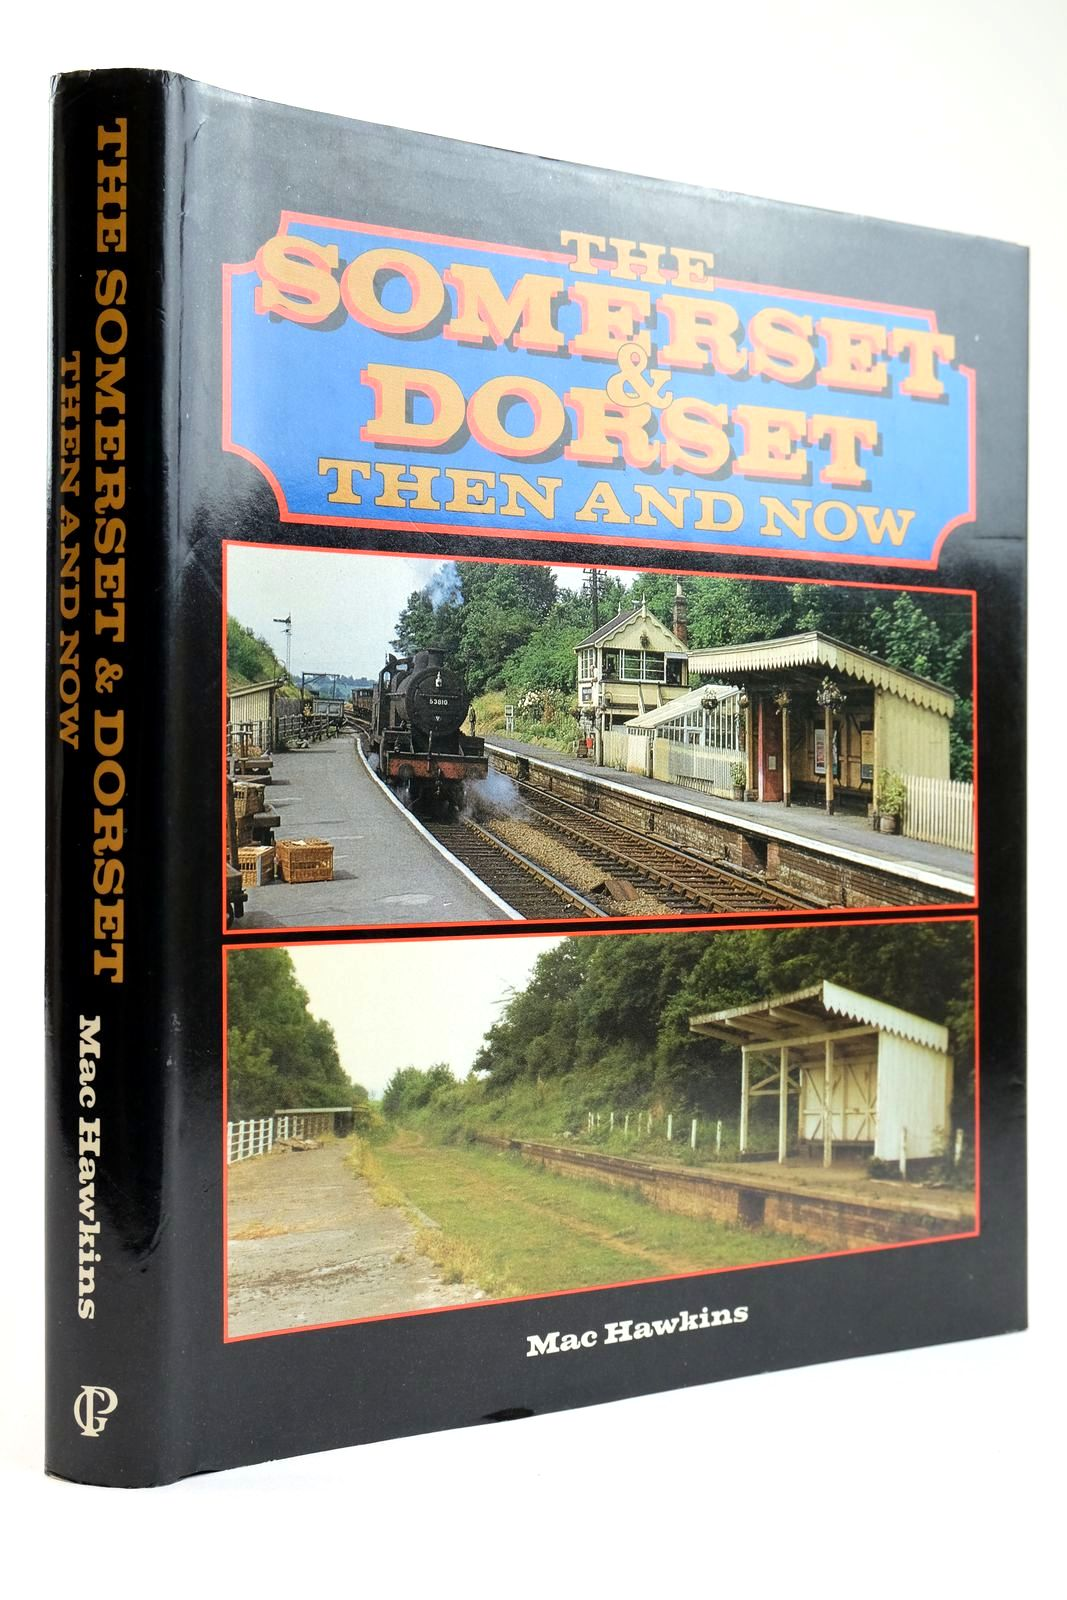 Photo of THE SOMERSET & DORSET THEN AND NOW written by Hawkins, Mac published by Guild Publishing (STOCK CODE: 2133555)  for sale by Stella & Rose's Books